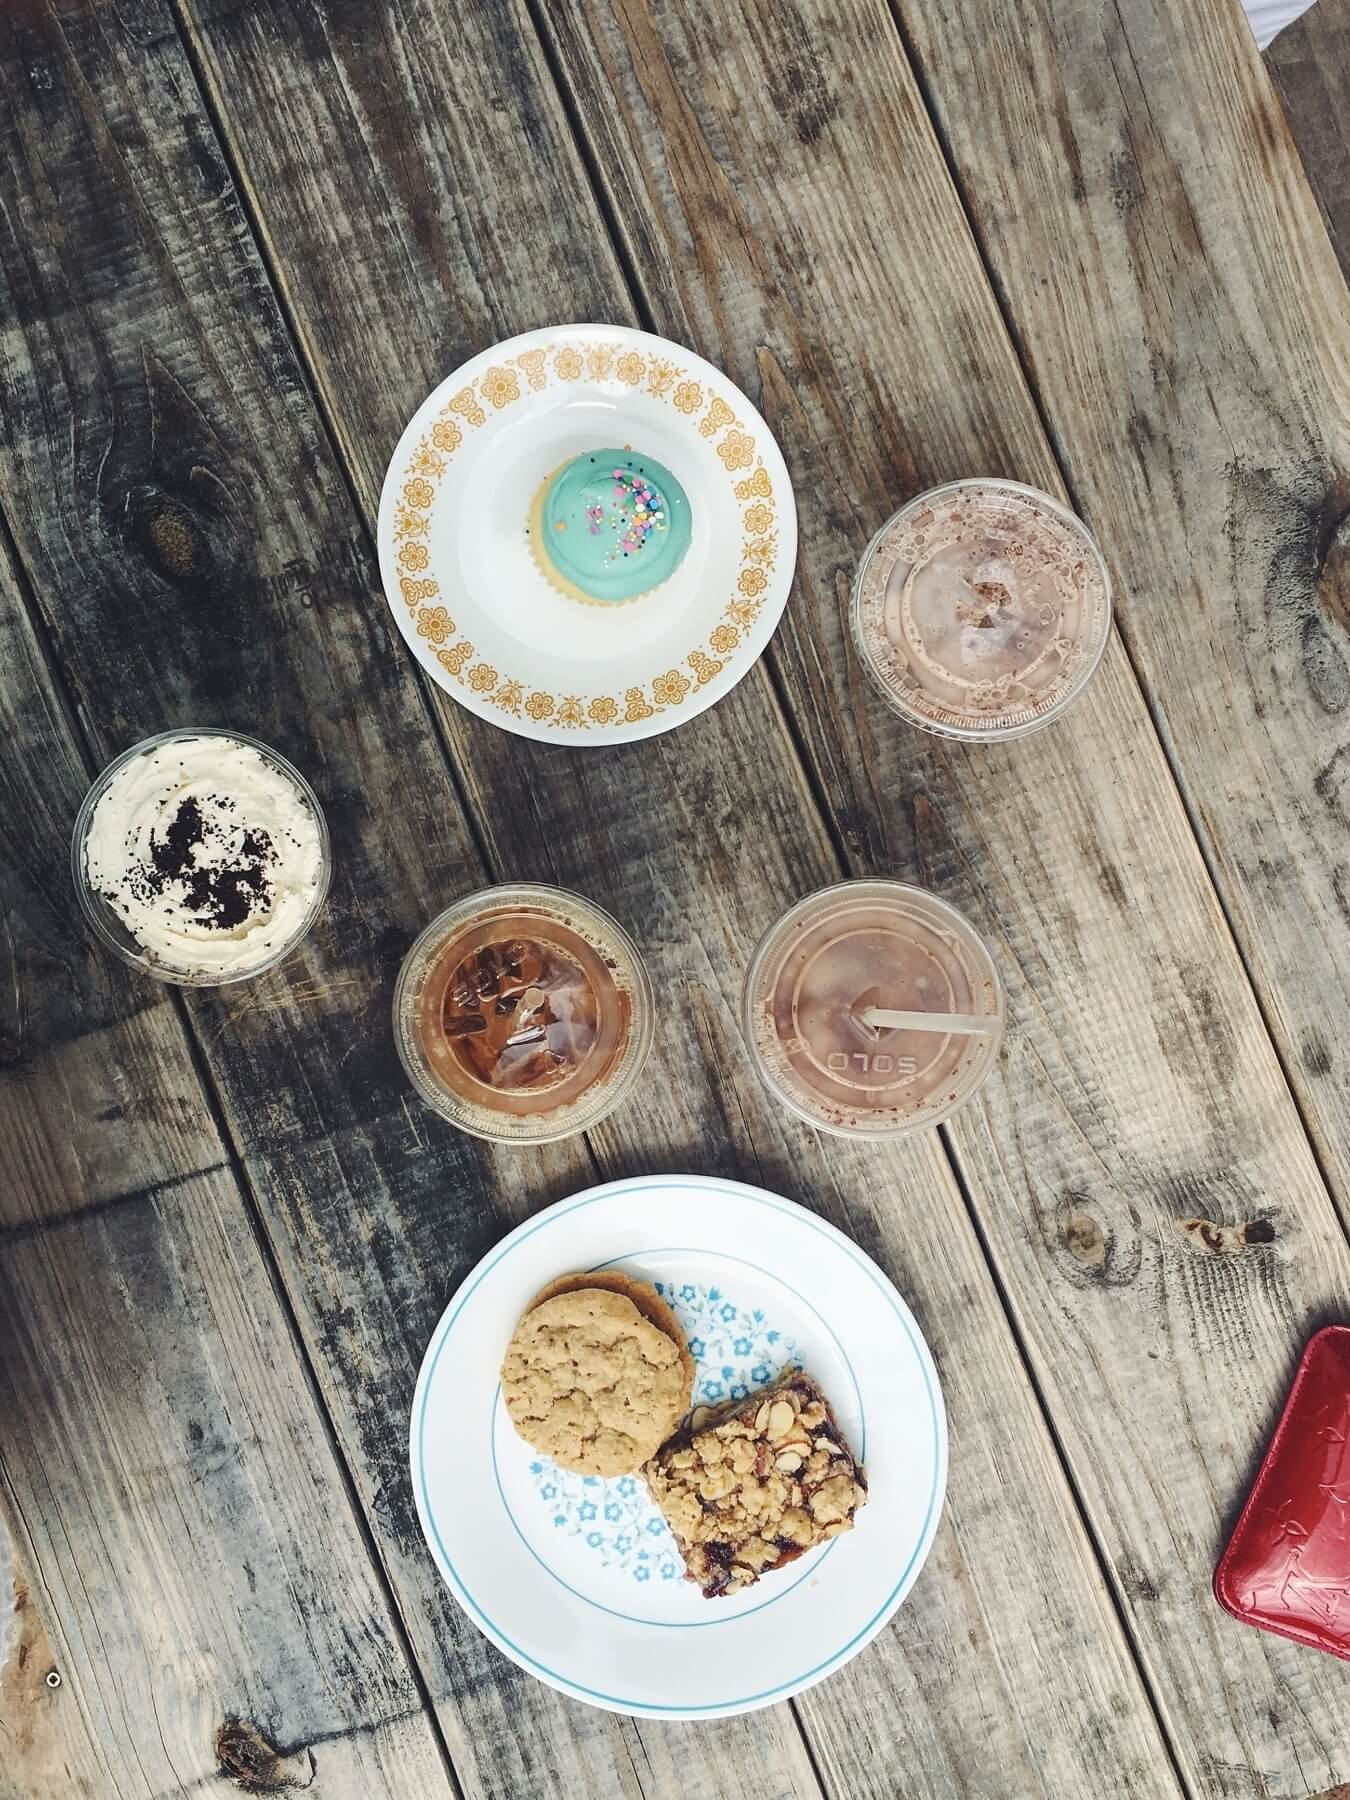 Muddy's baked-from-scratch Southern desserts range from puddings, cakes and pies to cupcakes, cookies and brownies. Image: Cara Greenstein of Caramelized